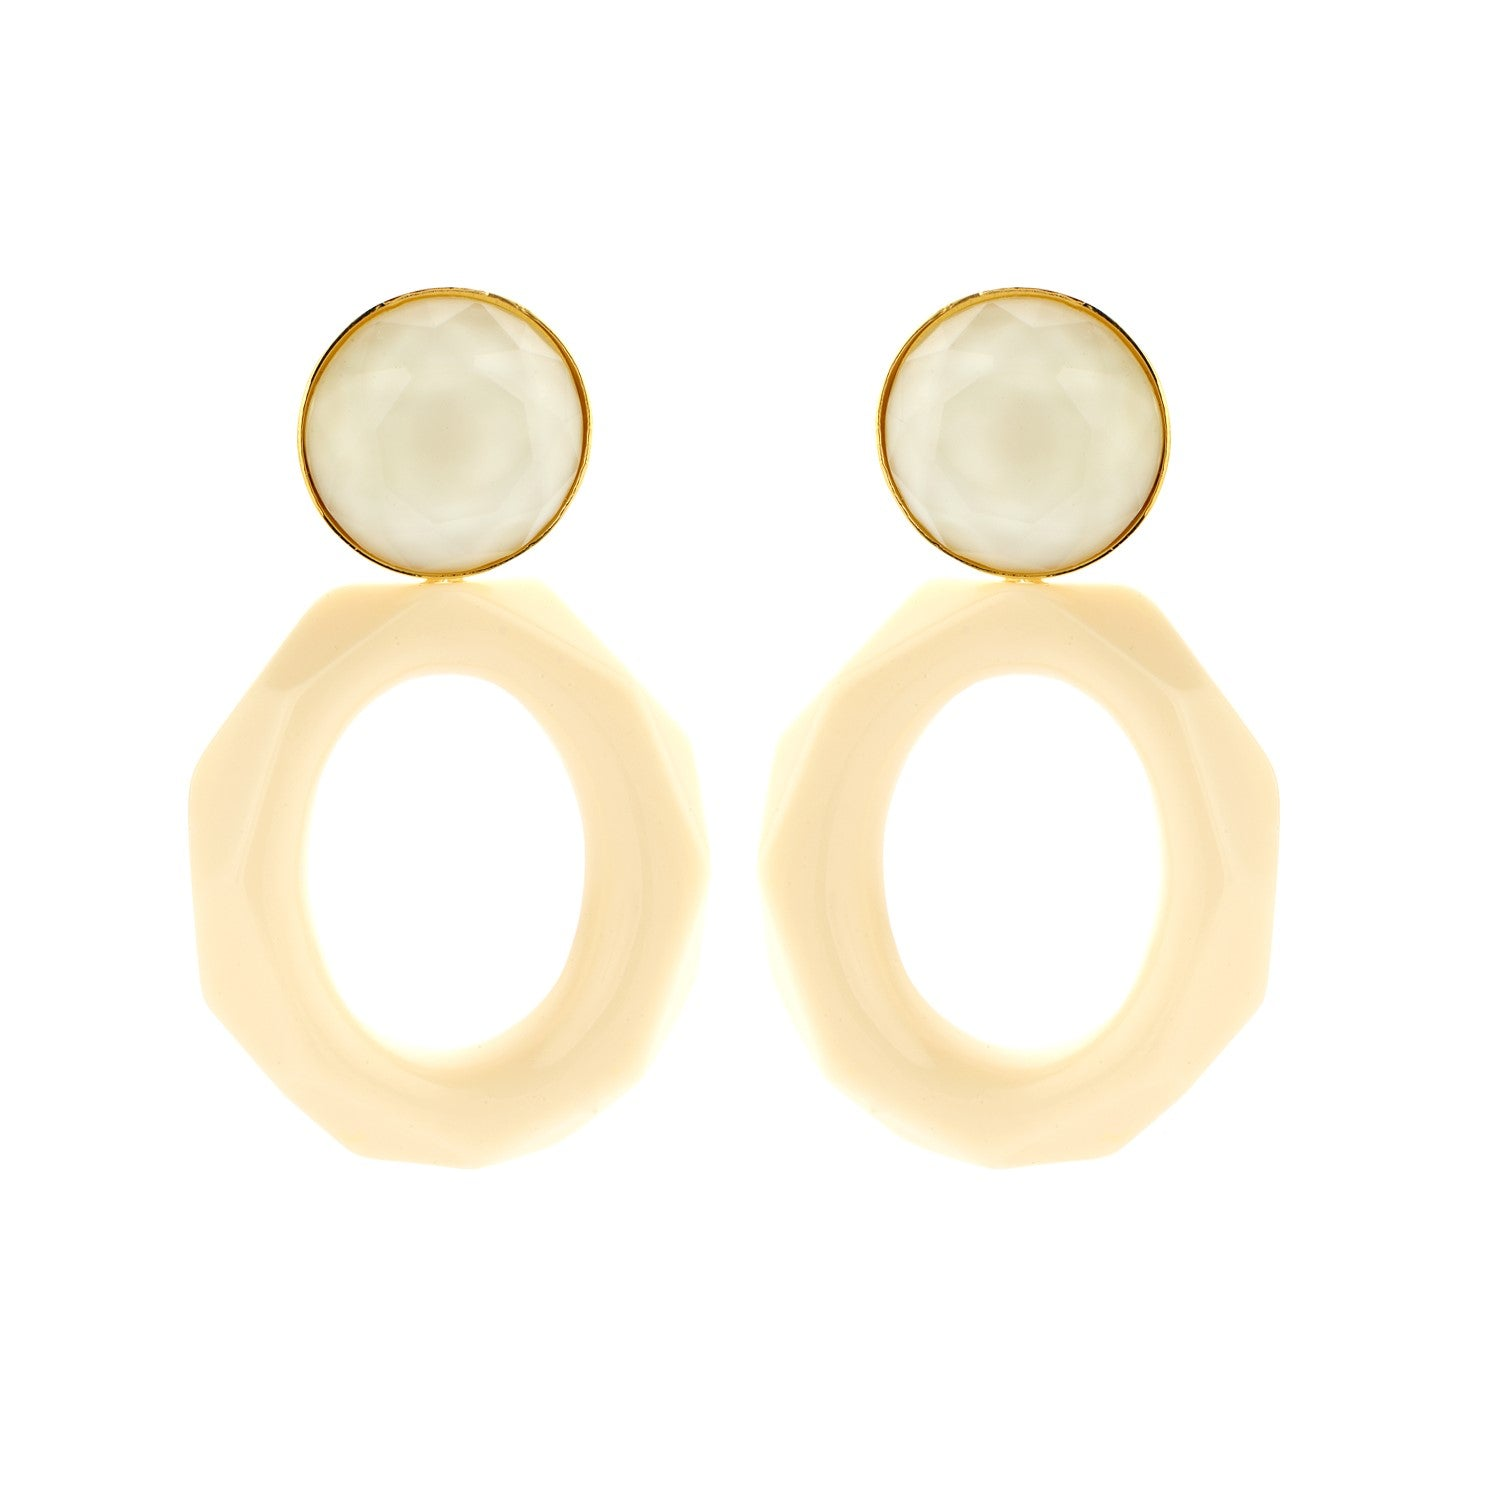 Mary facet large ivory earrings